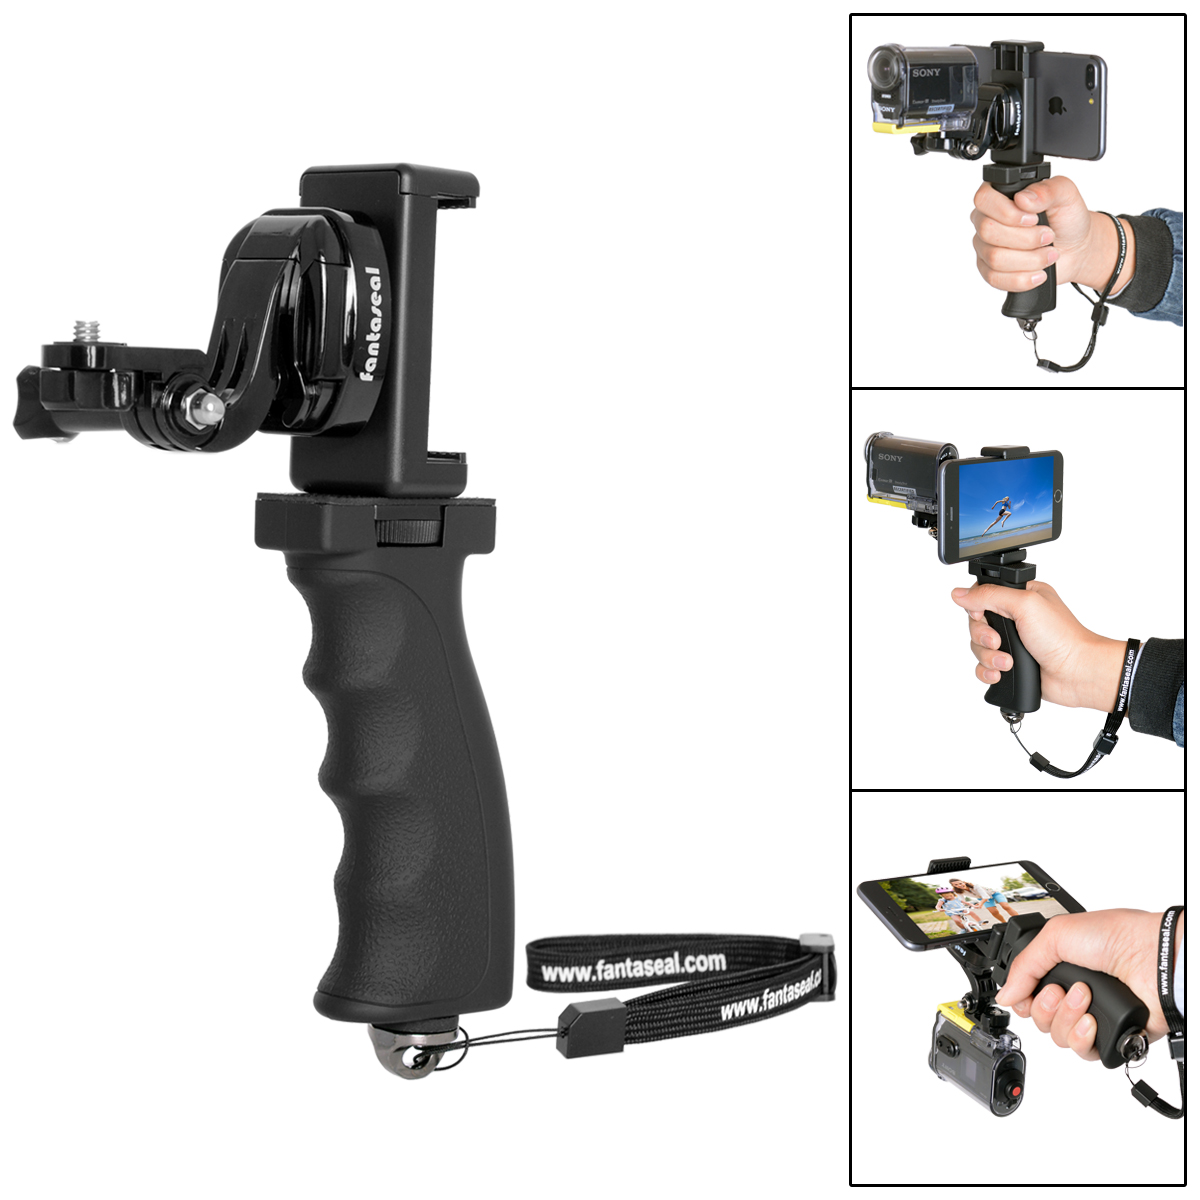 Image 2 - Fantaseal Action Camera Hand Grip Mount + Mobile Phone Clip for Sony AS200V AS300R FD X3000R SJCAM Gear 360 Stabilizer Holder-in Sports Camcorder Cases from Consumer Electronics